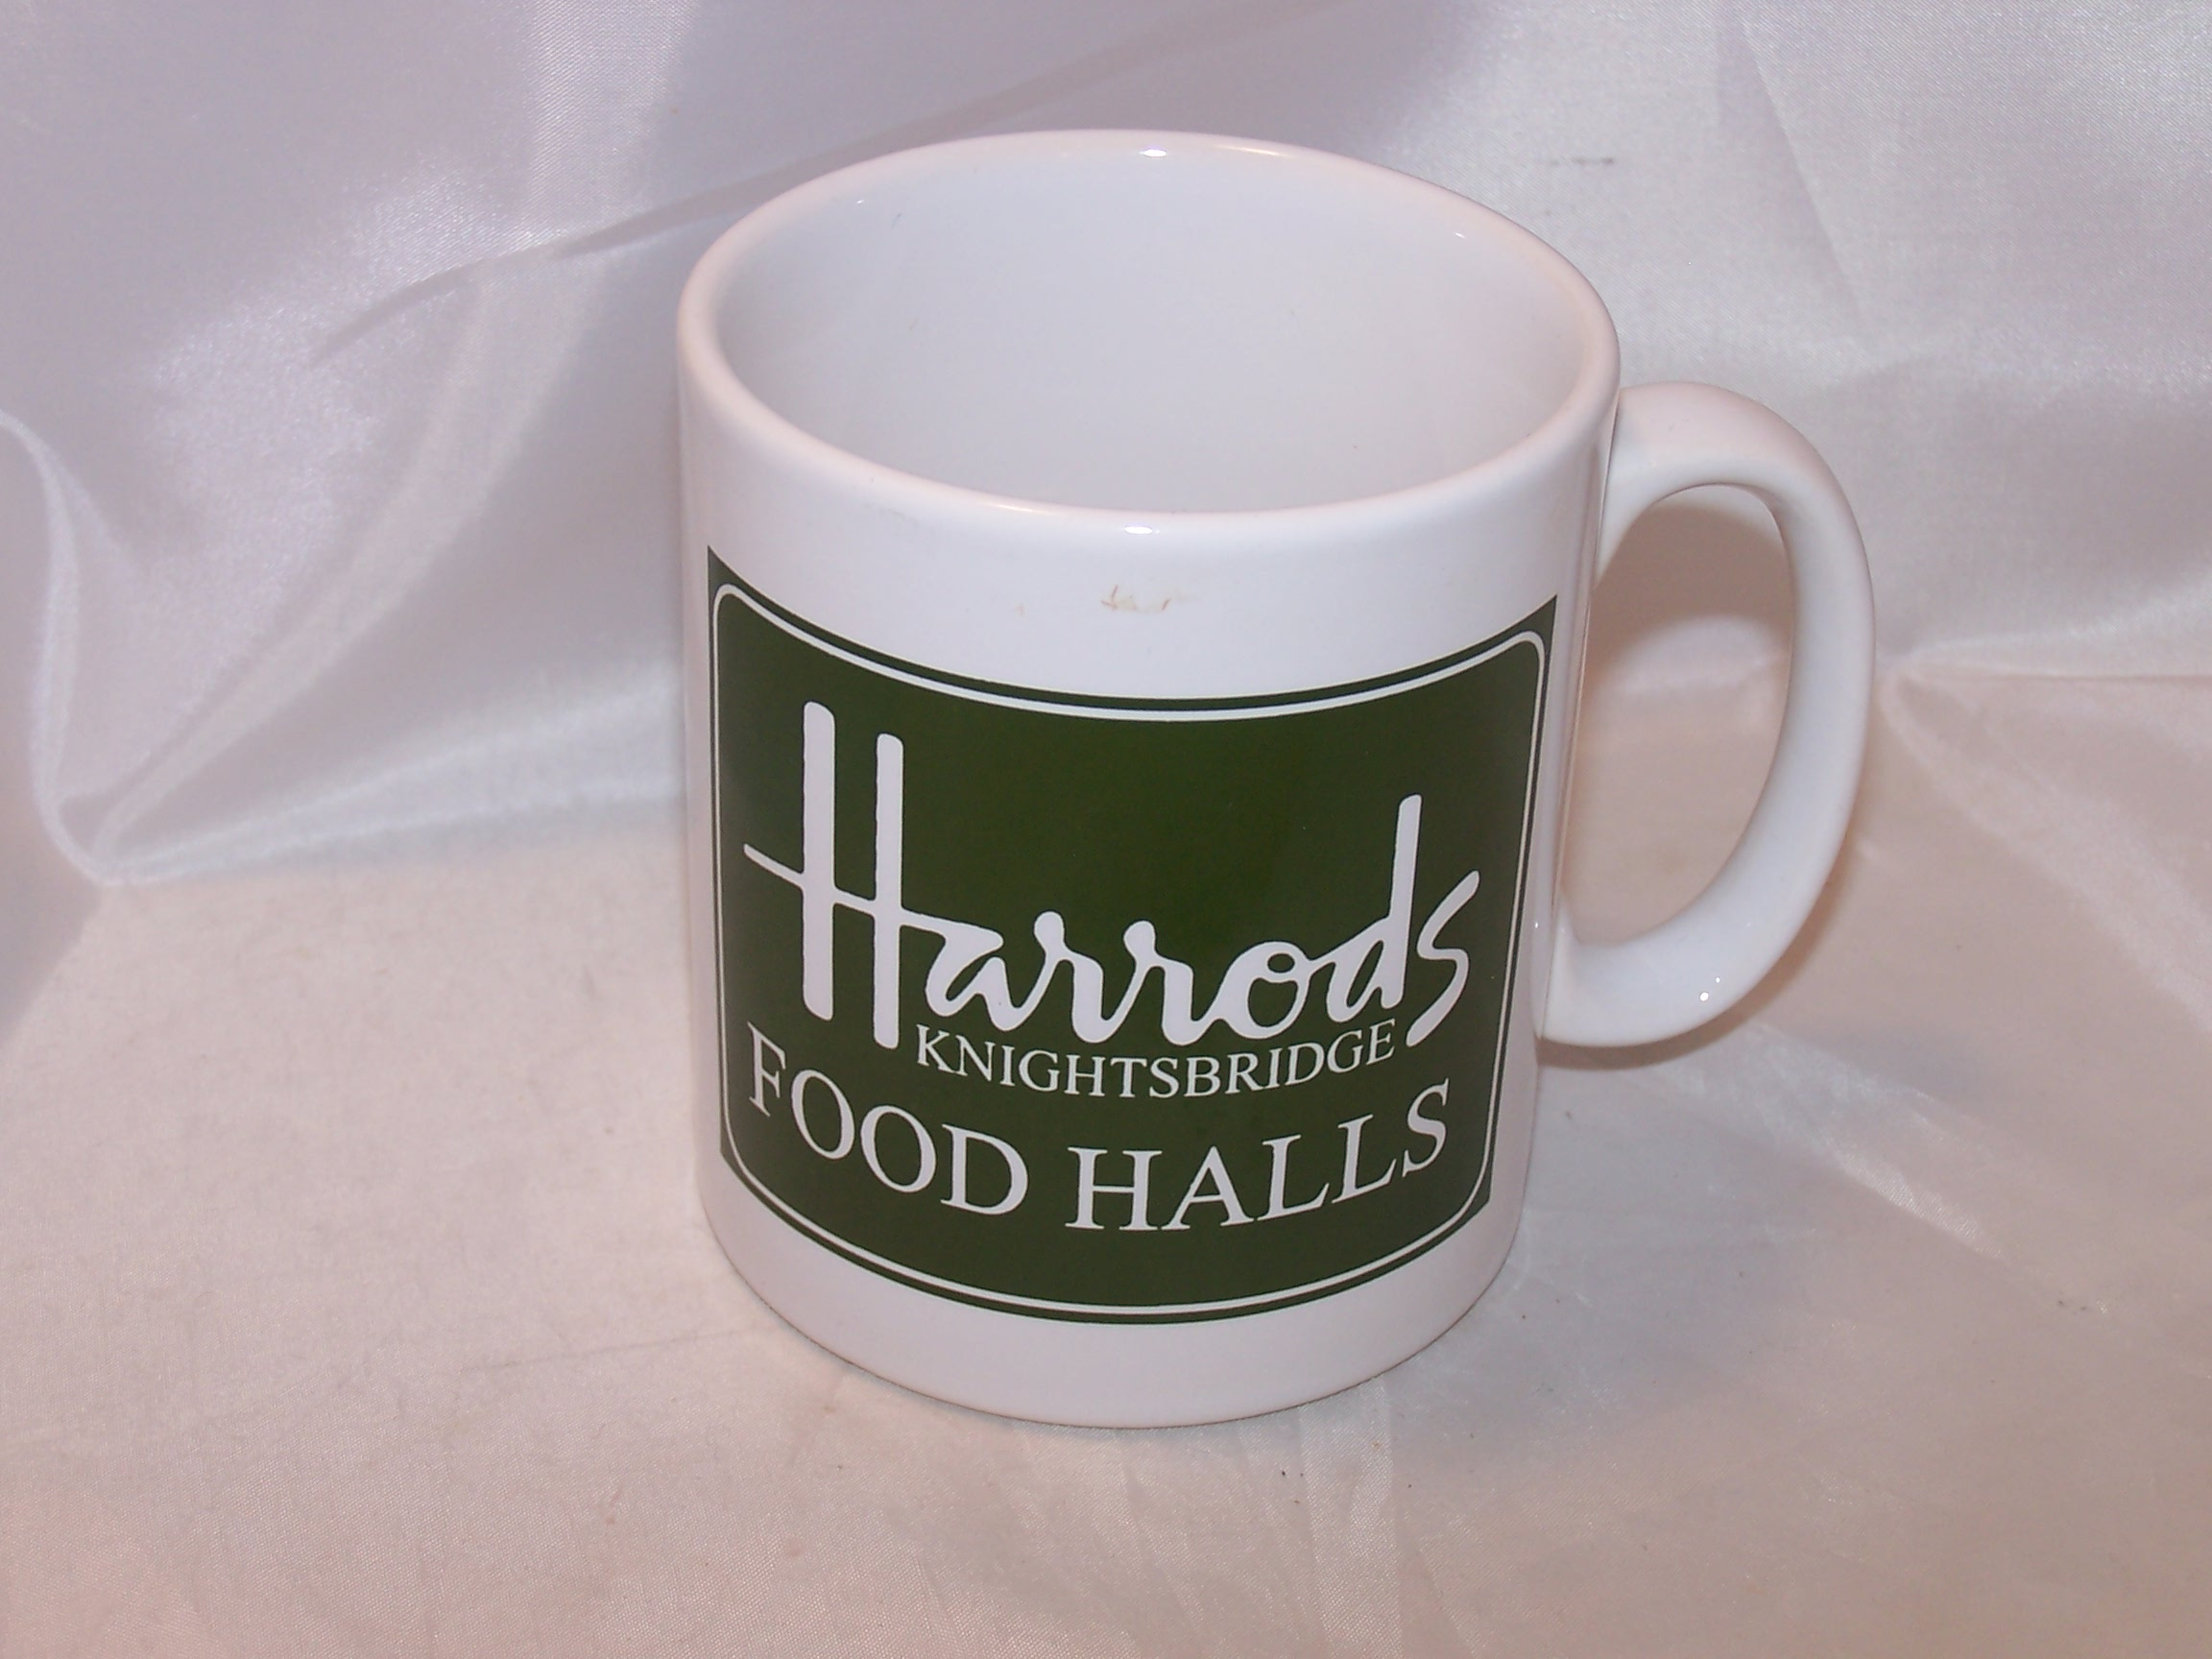 Harrods Food Hall Mug, Cup, Knightsbridge, Green, White